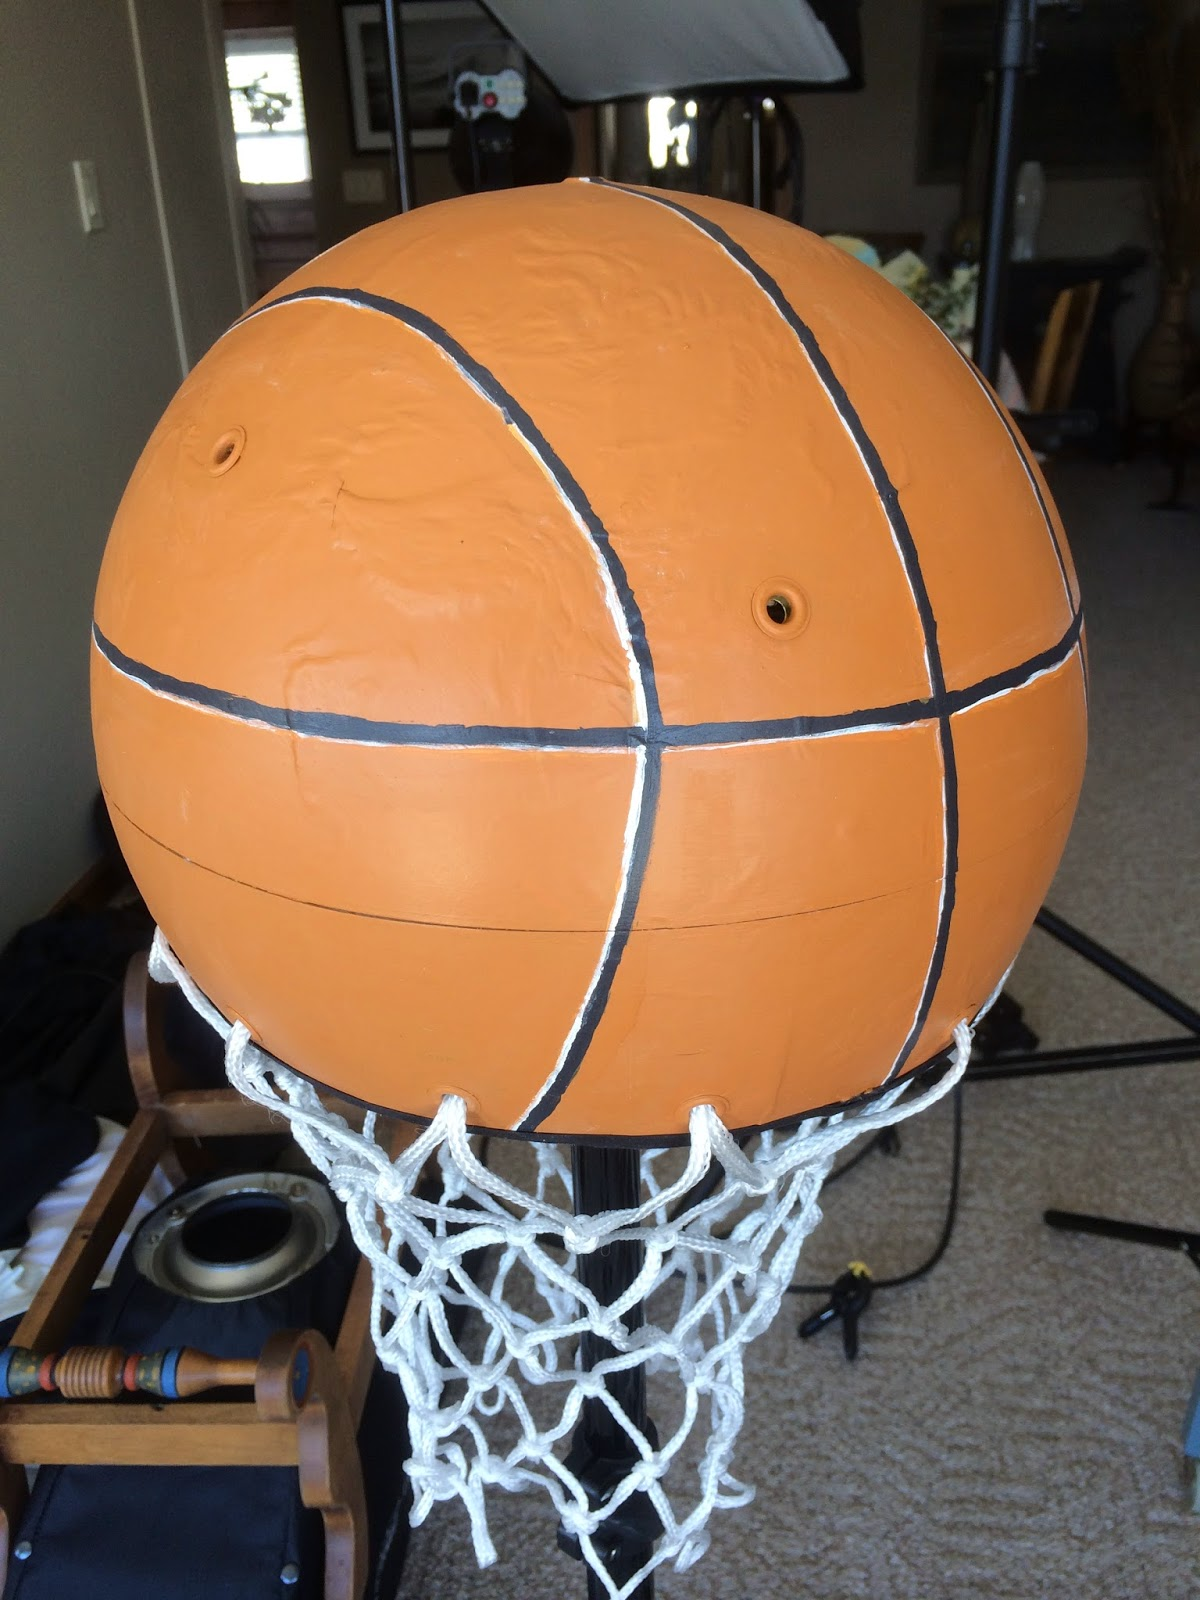 image Kawartha Lakes Mums featured   Upcycle -Globe Becomes Basketball Floor Lamp -TayRose Designs